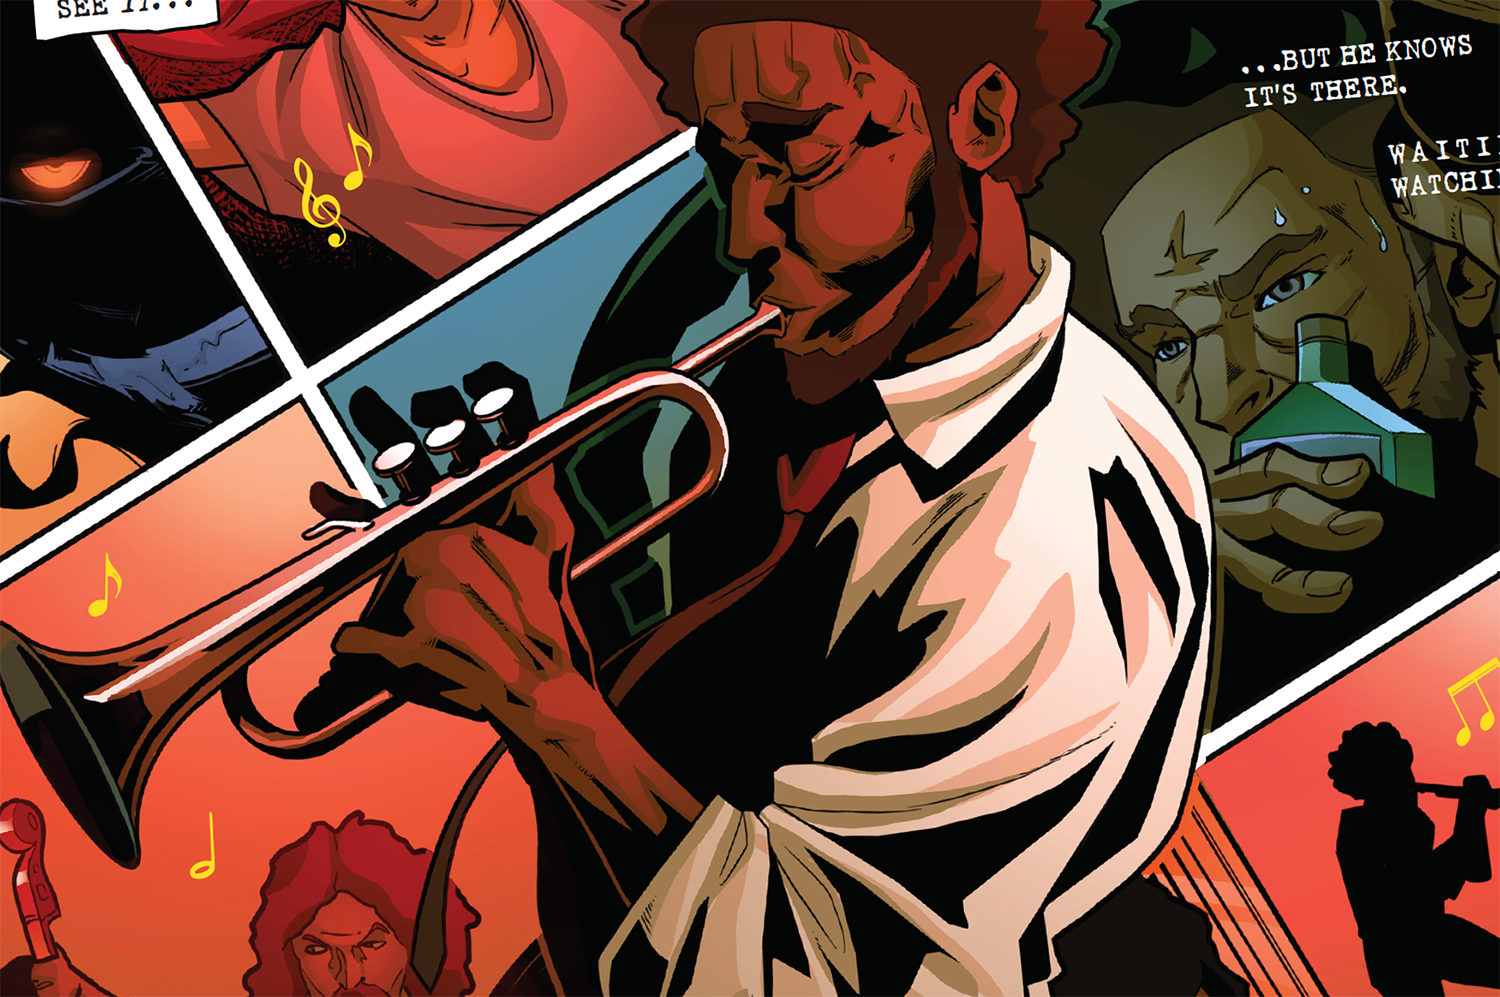 Image result for jazz legend # 1 scout comics